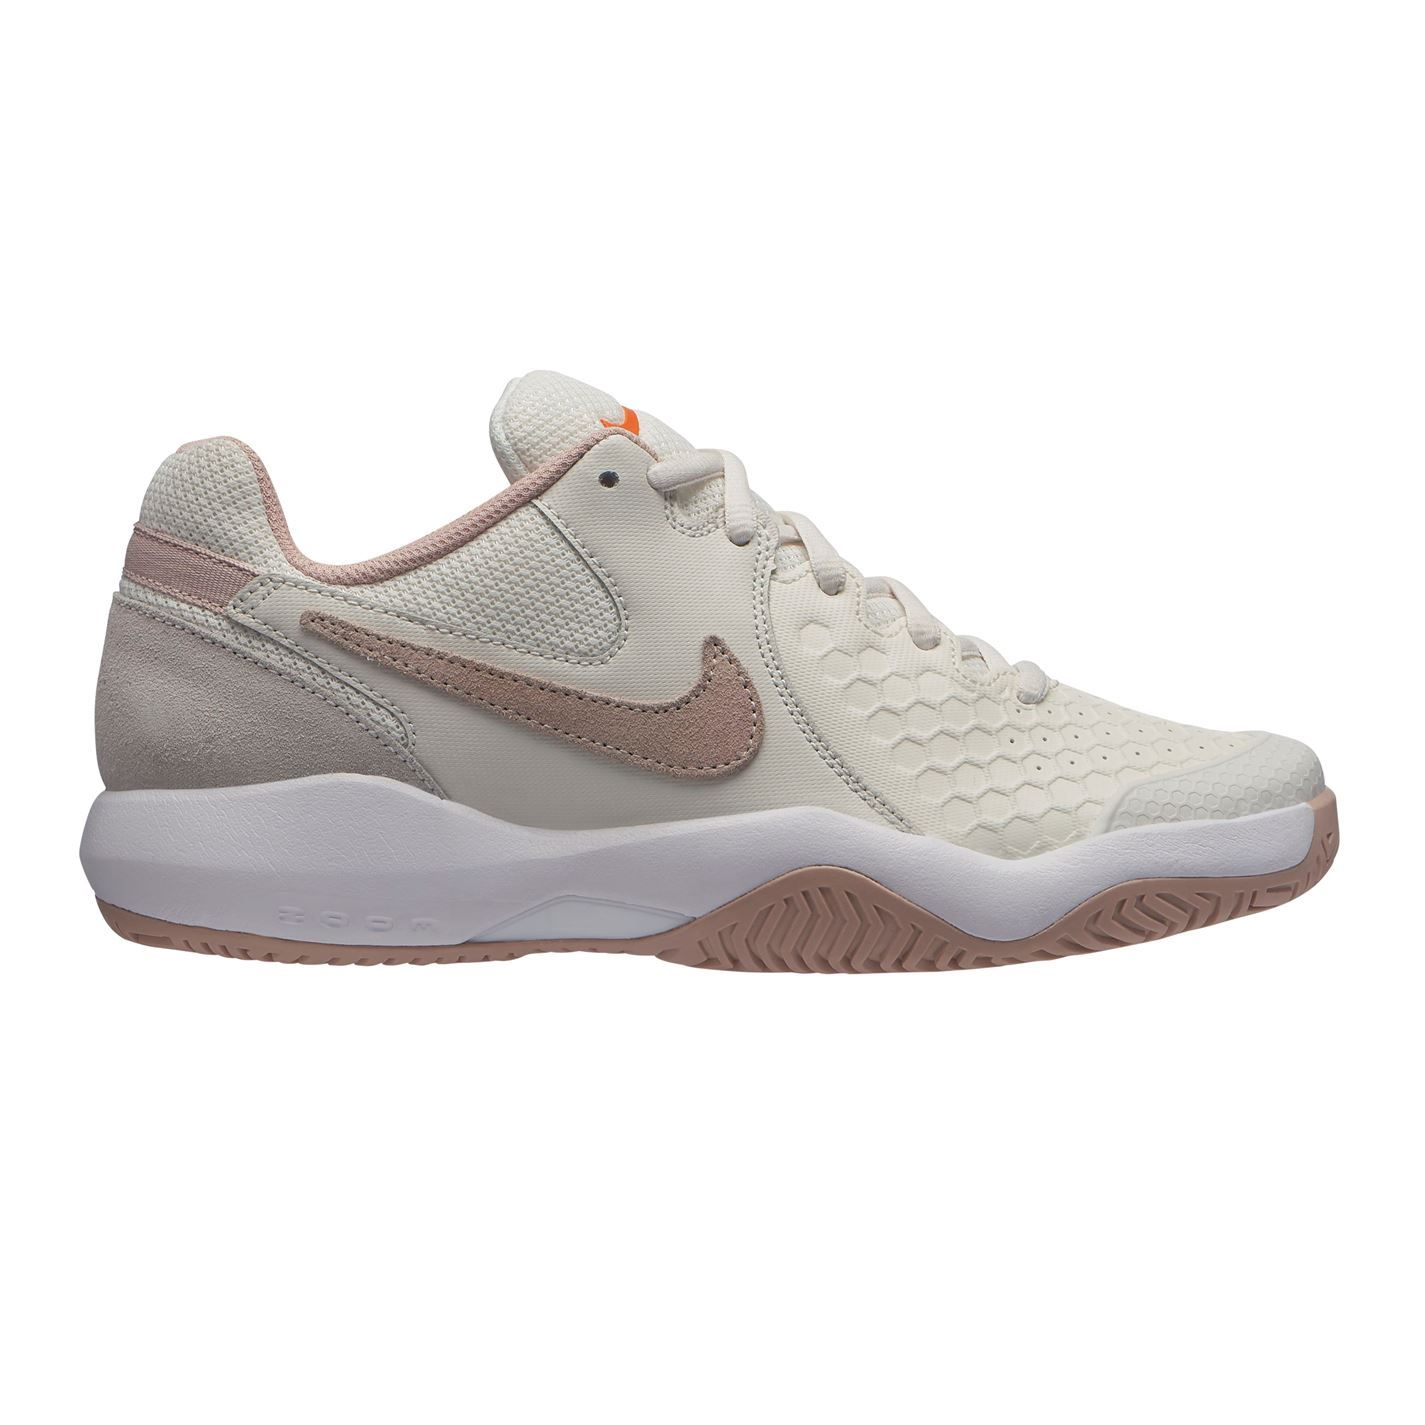 Details about Nike Air Zoom Resistance Tennis Shoes Womens Grey Trainers Sneakers Footwear